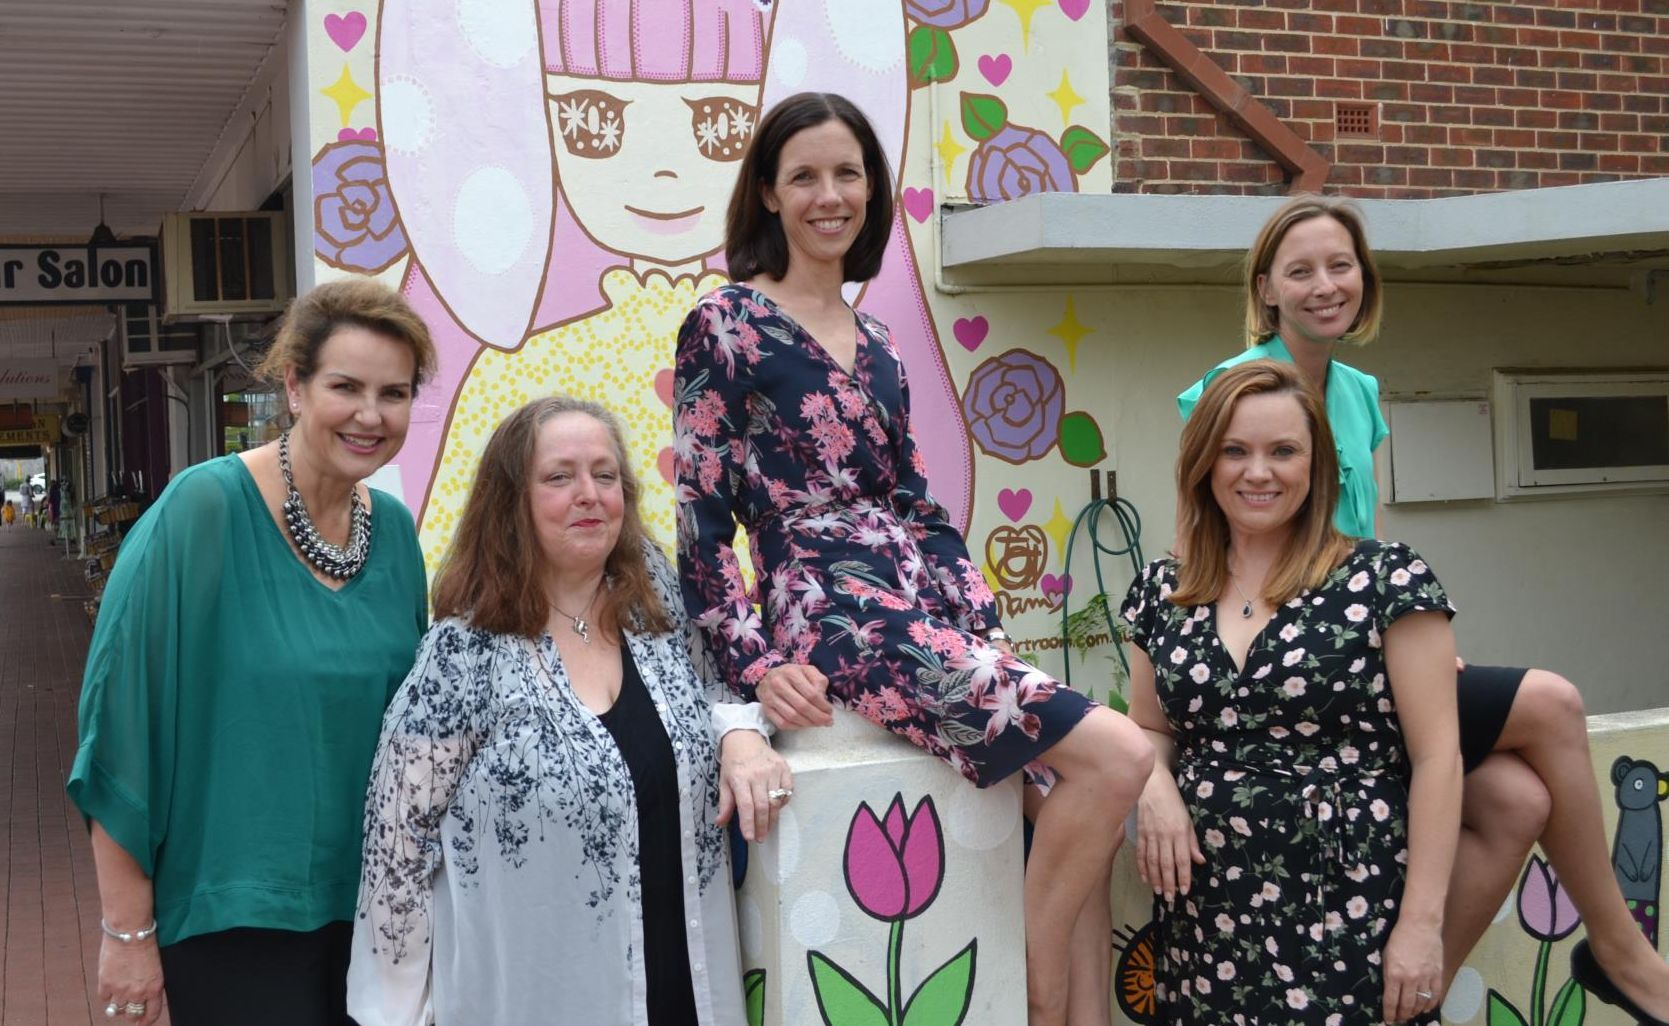 Town of Bassendean Celebrates International Women's Day